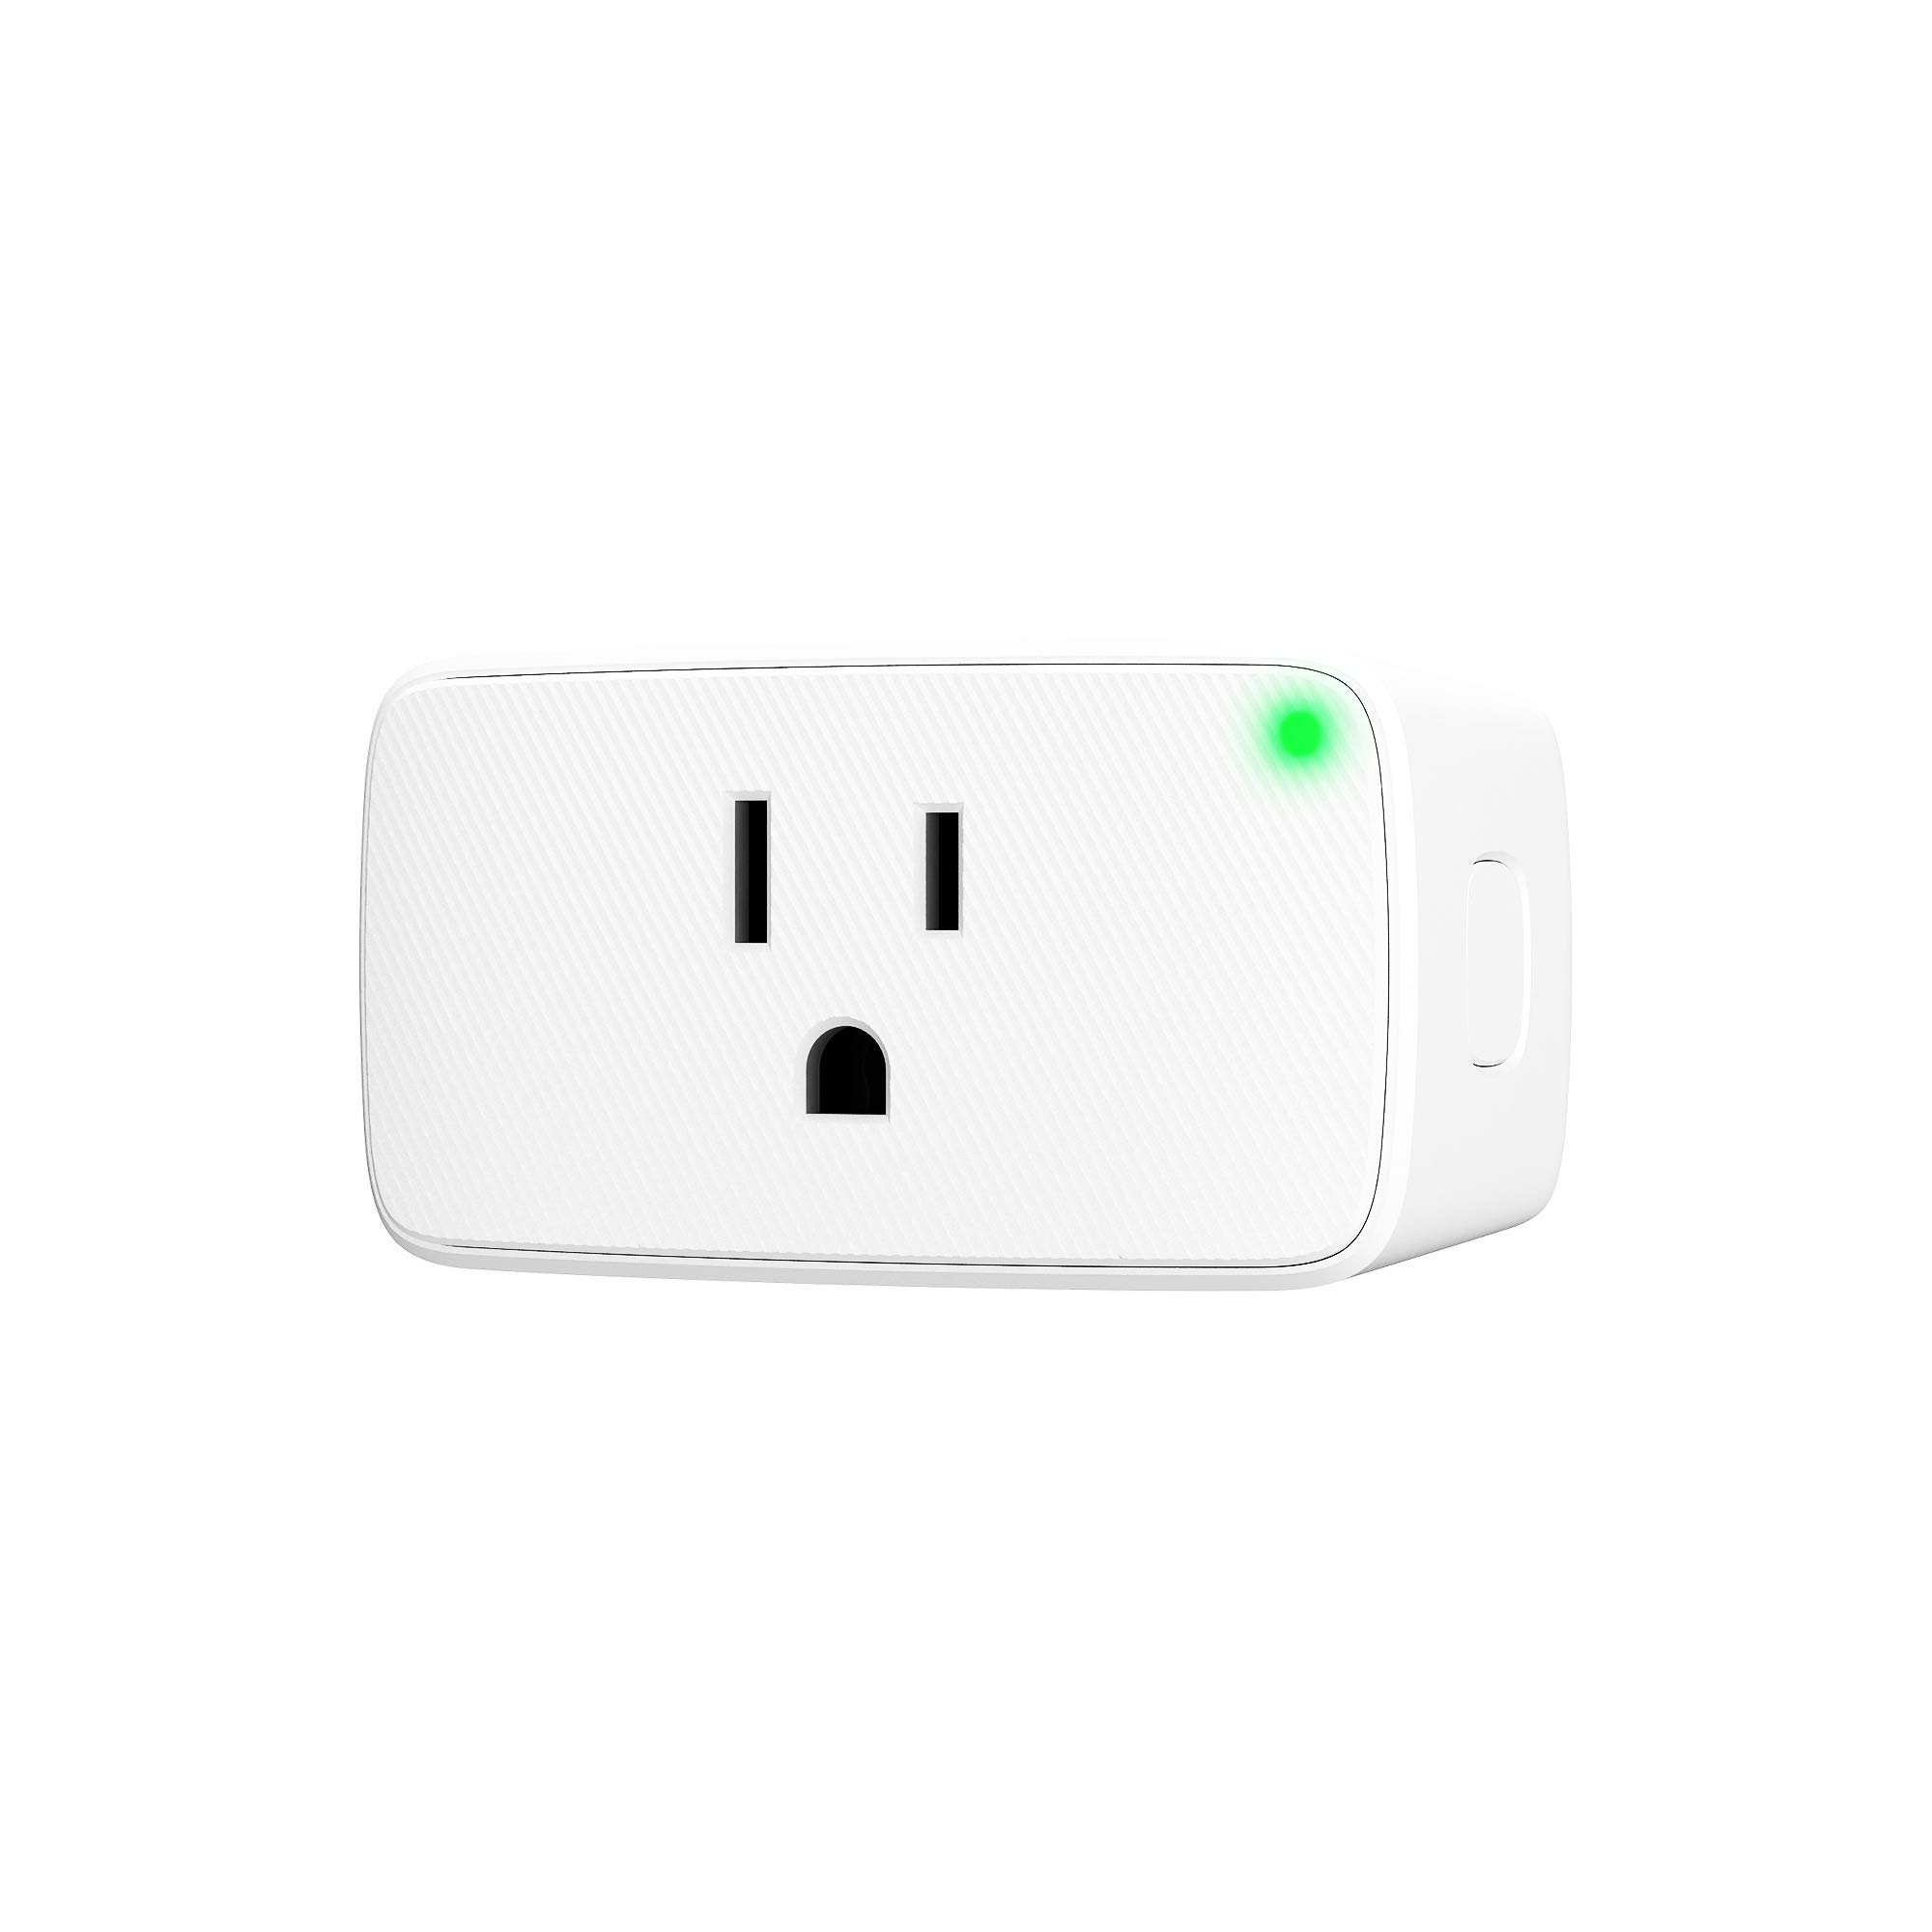 VOCOlinc Smart Plug, Wi-Fi Mini Outlet Socket, Works with HomeKit (iOS12 or +), Alexa & Google Assistant, Timer, No Hub Required, 15A 1800W, 2.4GHz, Smartbar (1 Pack)